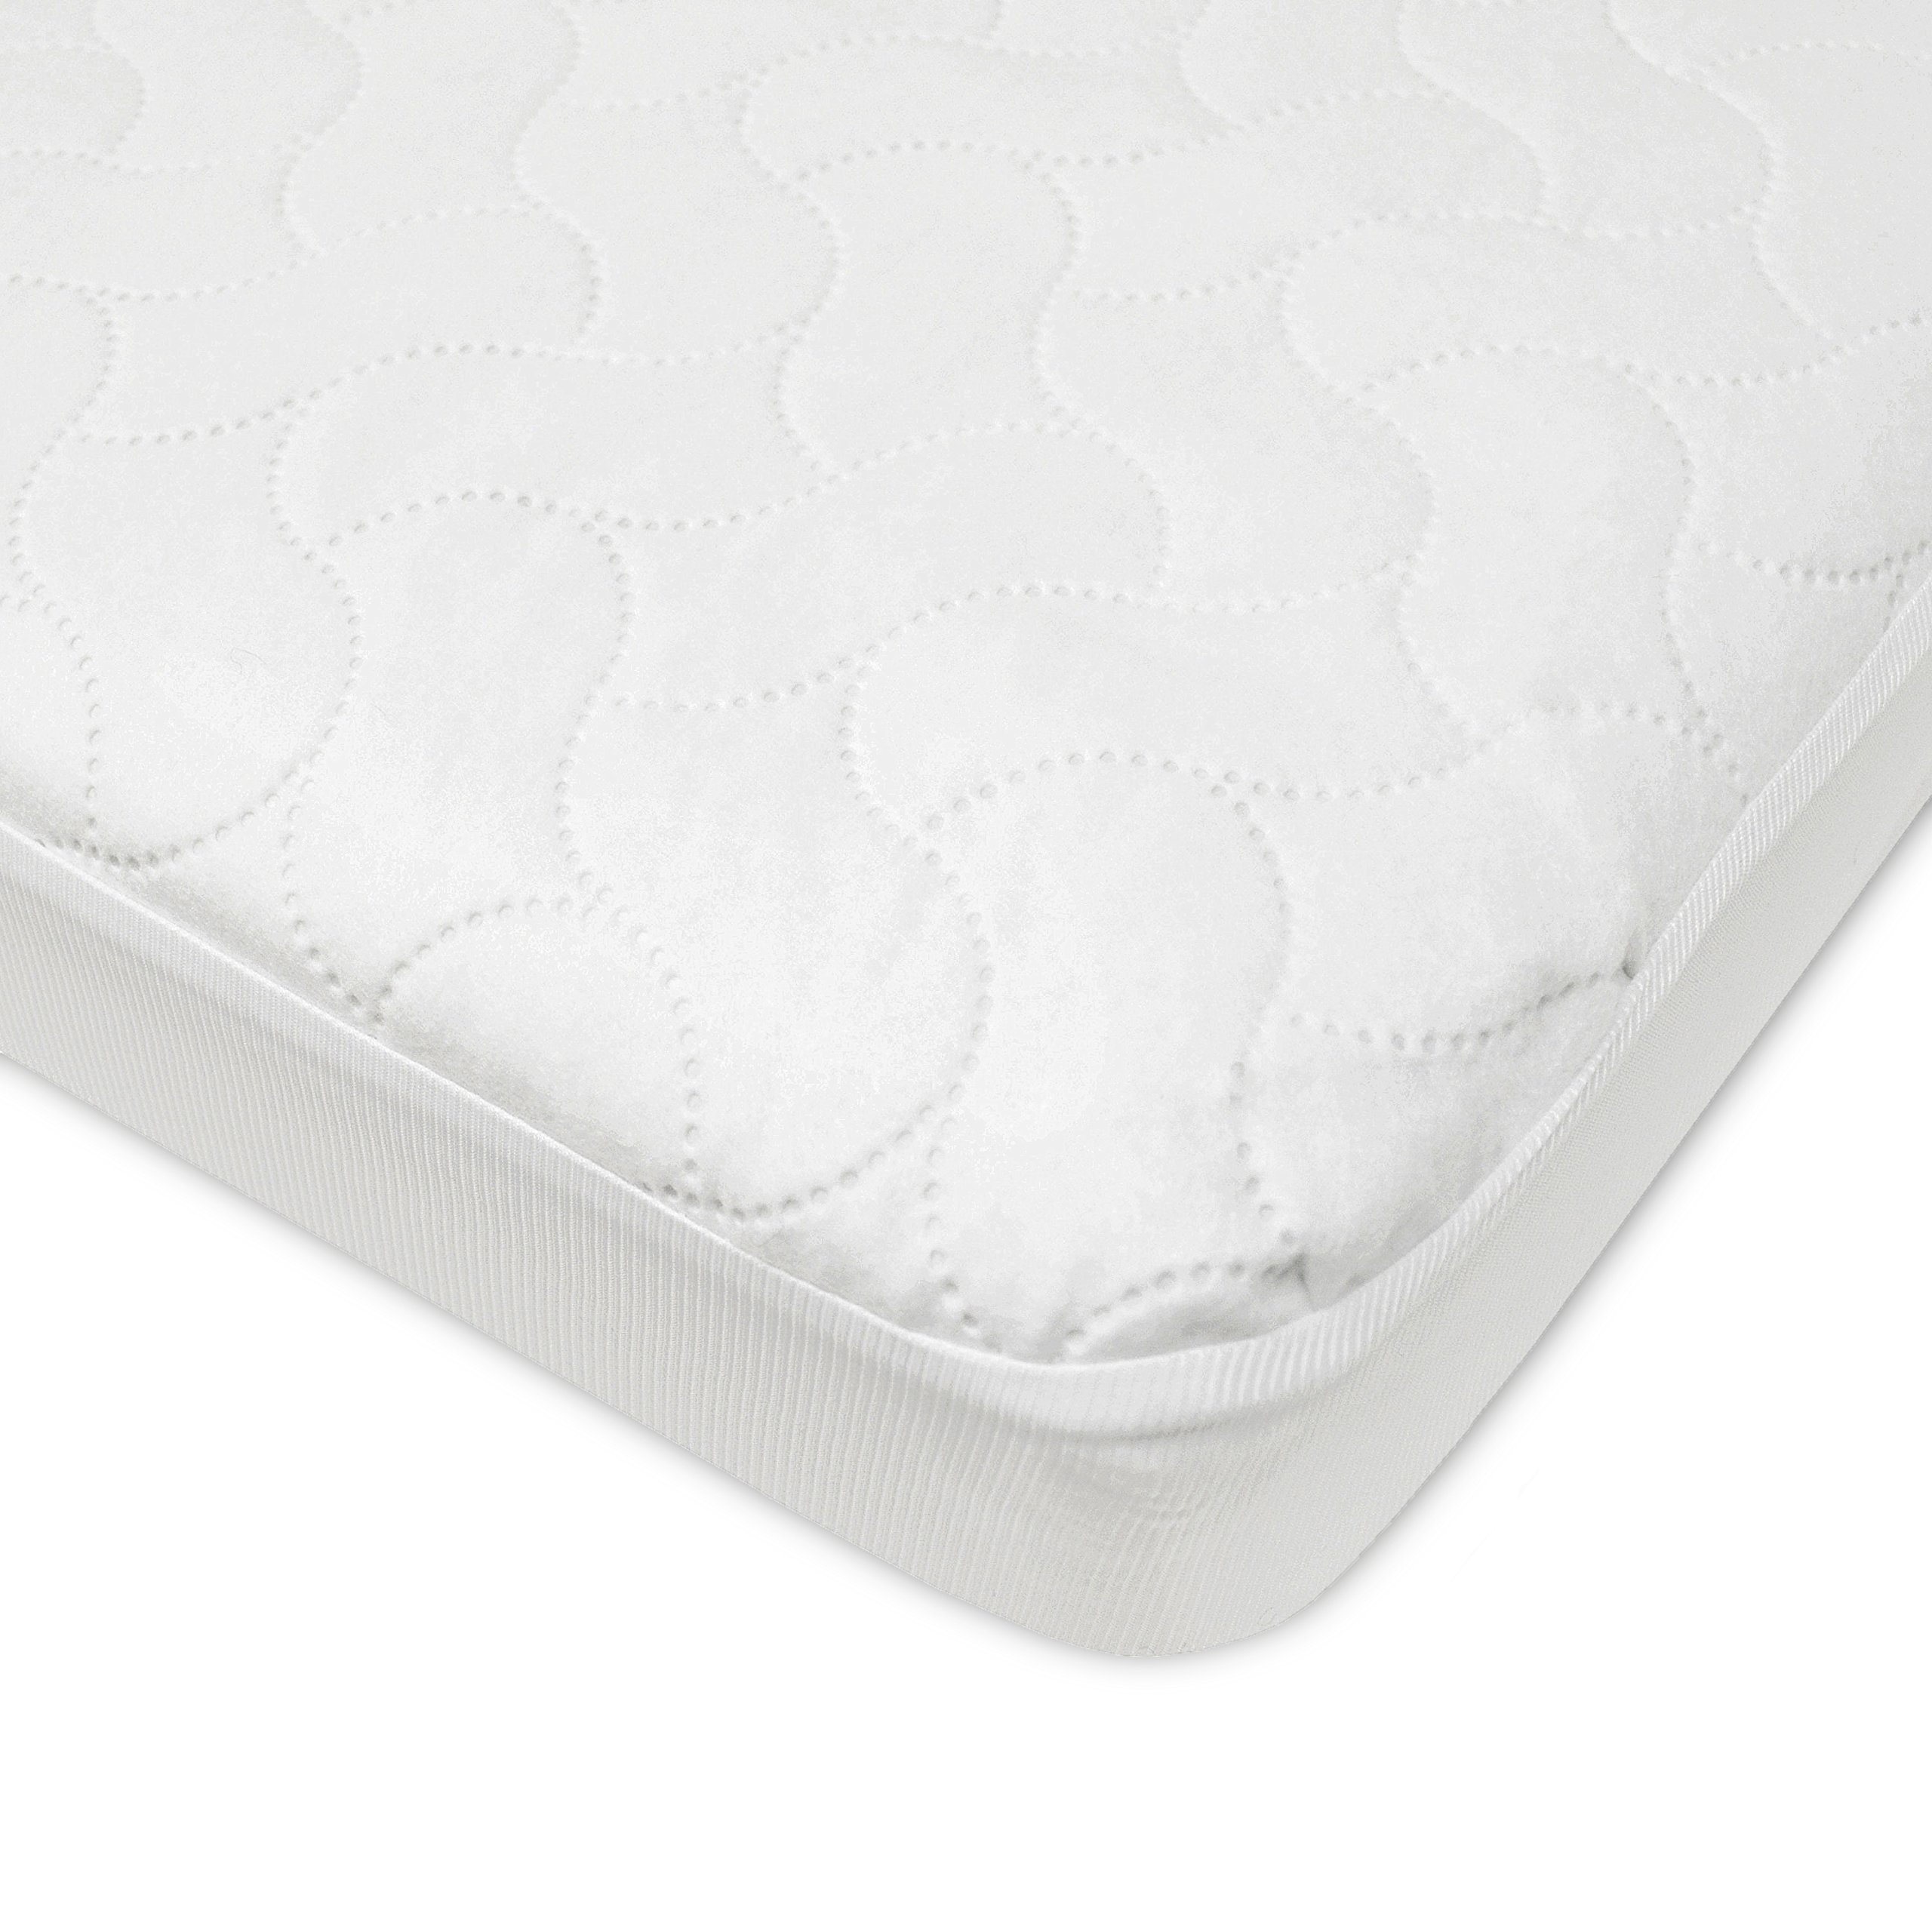 American Baby Company Waterproof Fitted Pack N Play Playard Protective Mattress Pad Cover, White by American Baby Company